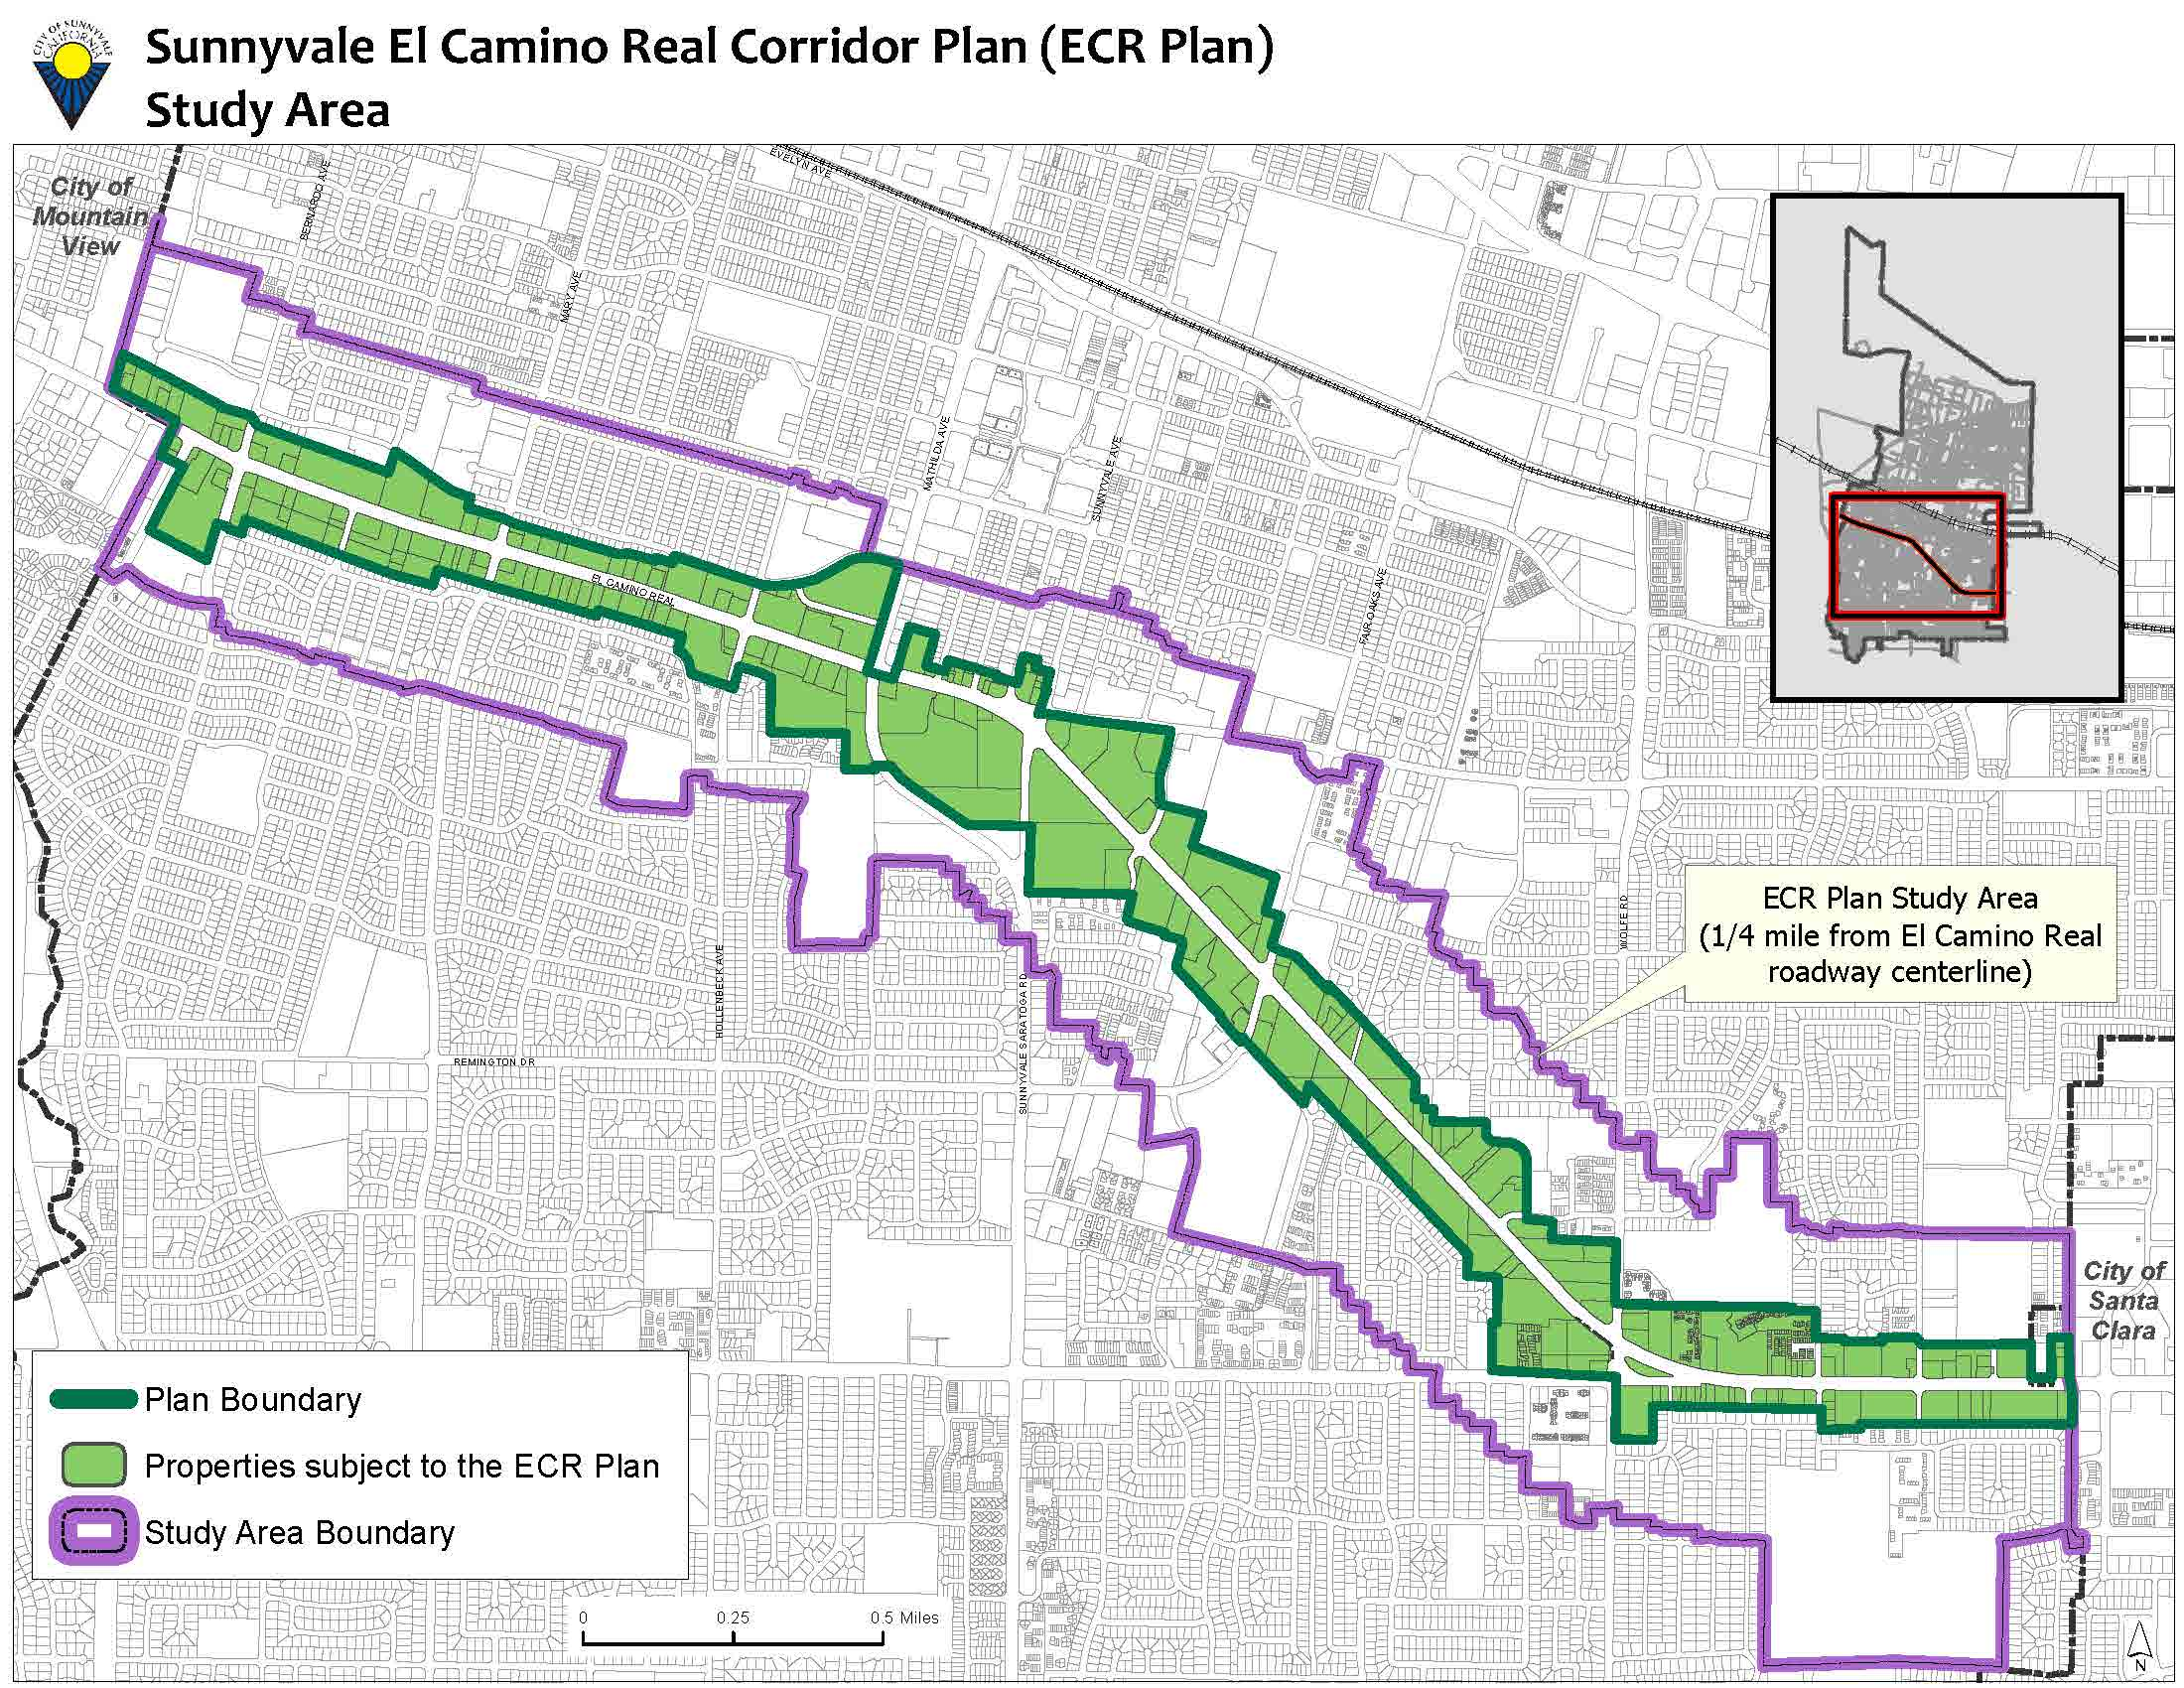 Map showing the plan's boundary, properties subect to the El Camino Real Specific Plan's provisions, and the study area boundary. Click on image to enlarge.